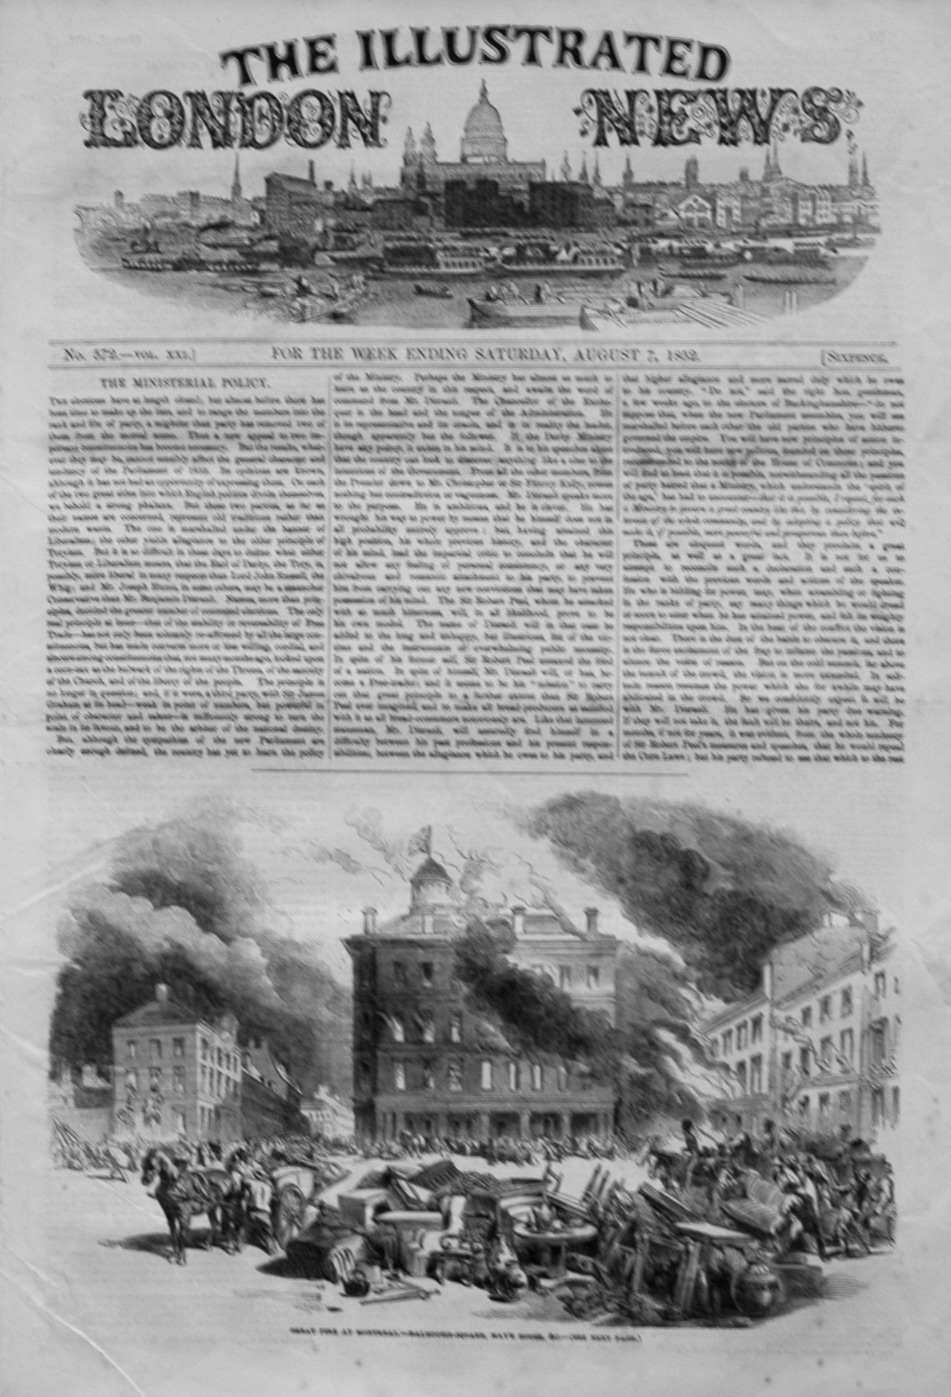 Illustrated London News August 7th 1852.